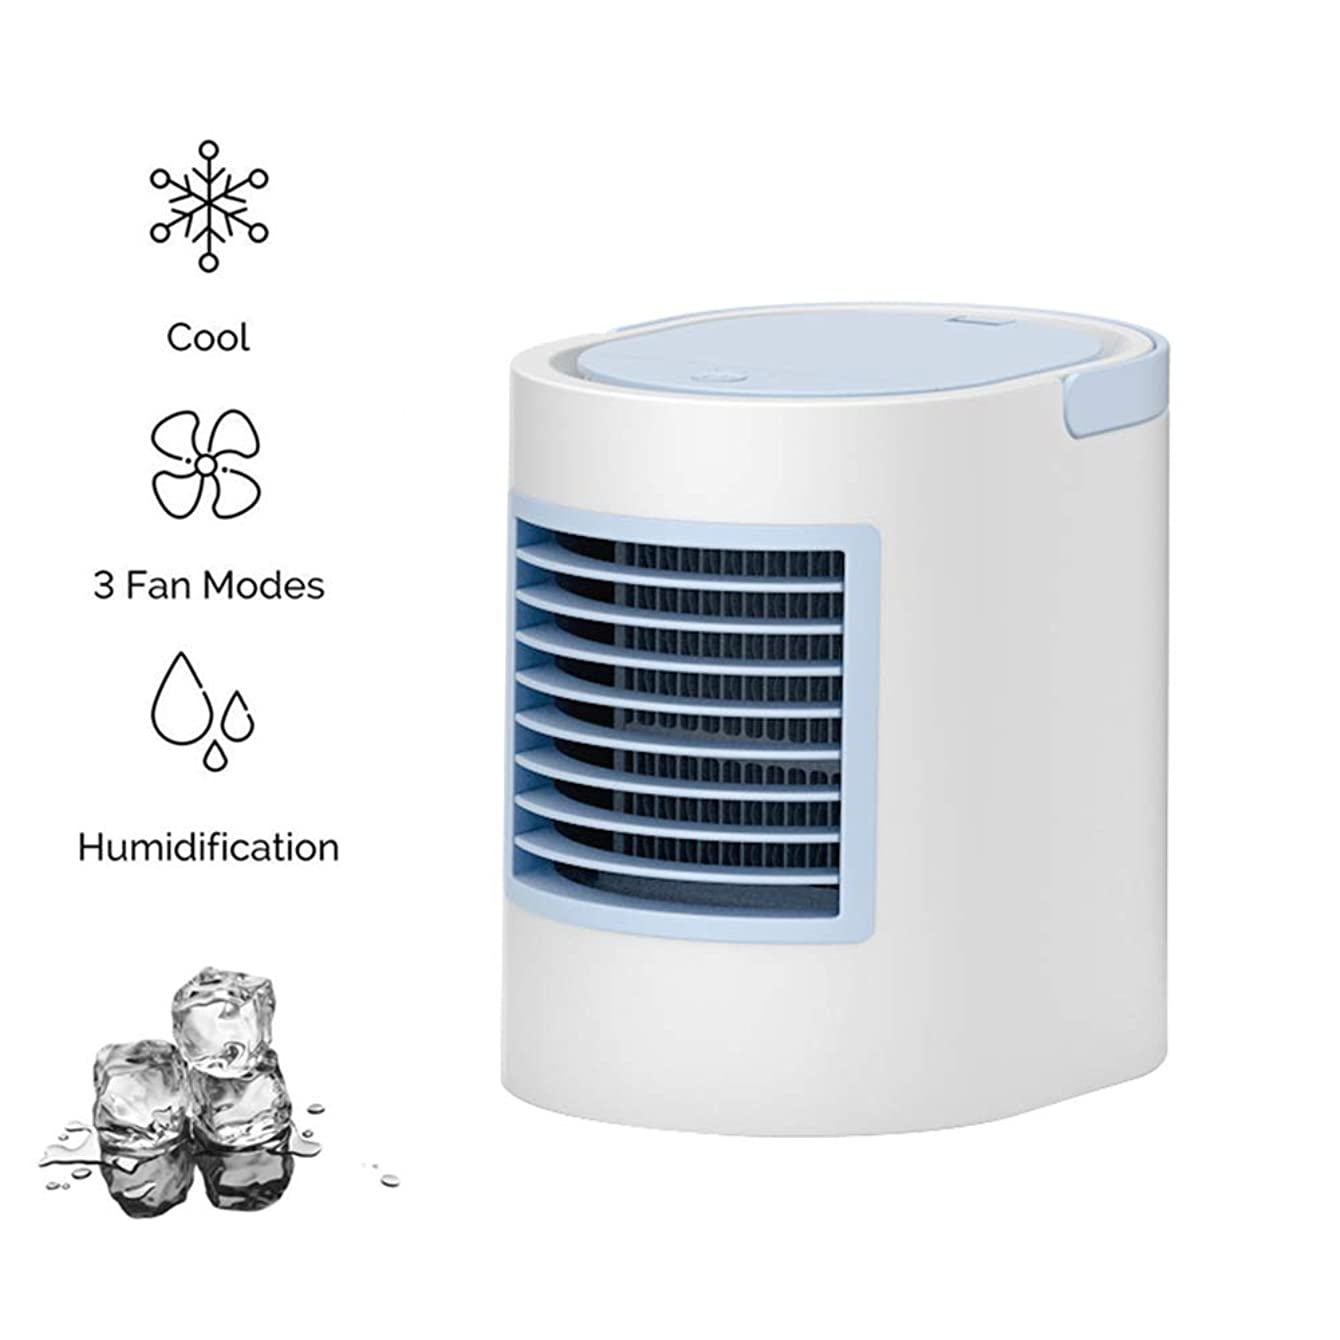 Portable Air Conditioner Fan, Desktop Personal Space Air Cooler 7.5-inch Super Mini Evaporative Air Circulator Humidifier Bladeless Quiet with LED Lights and Handle for Home Room Office (Blue)